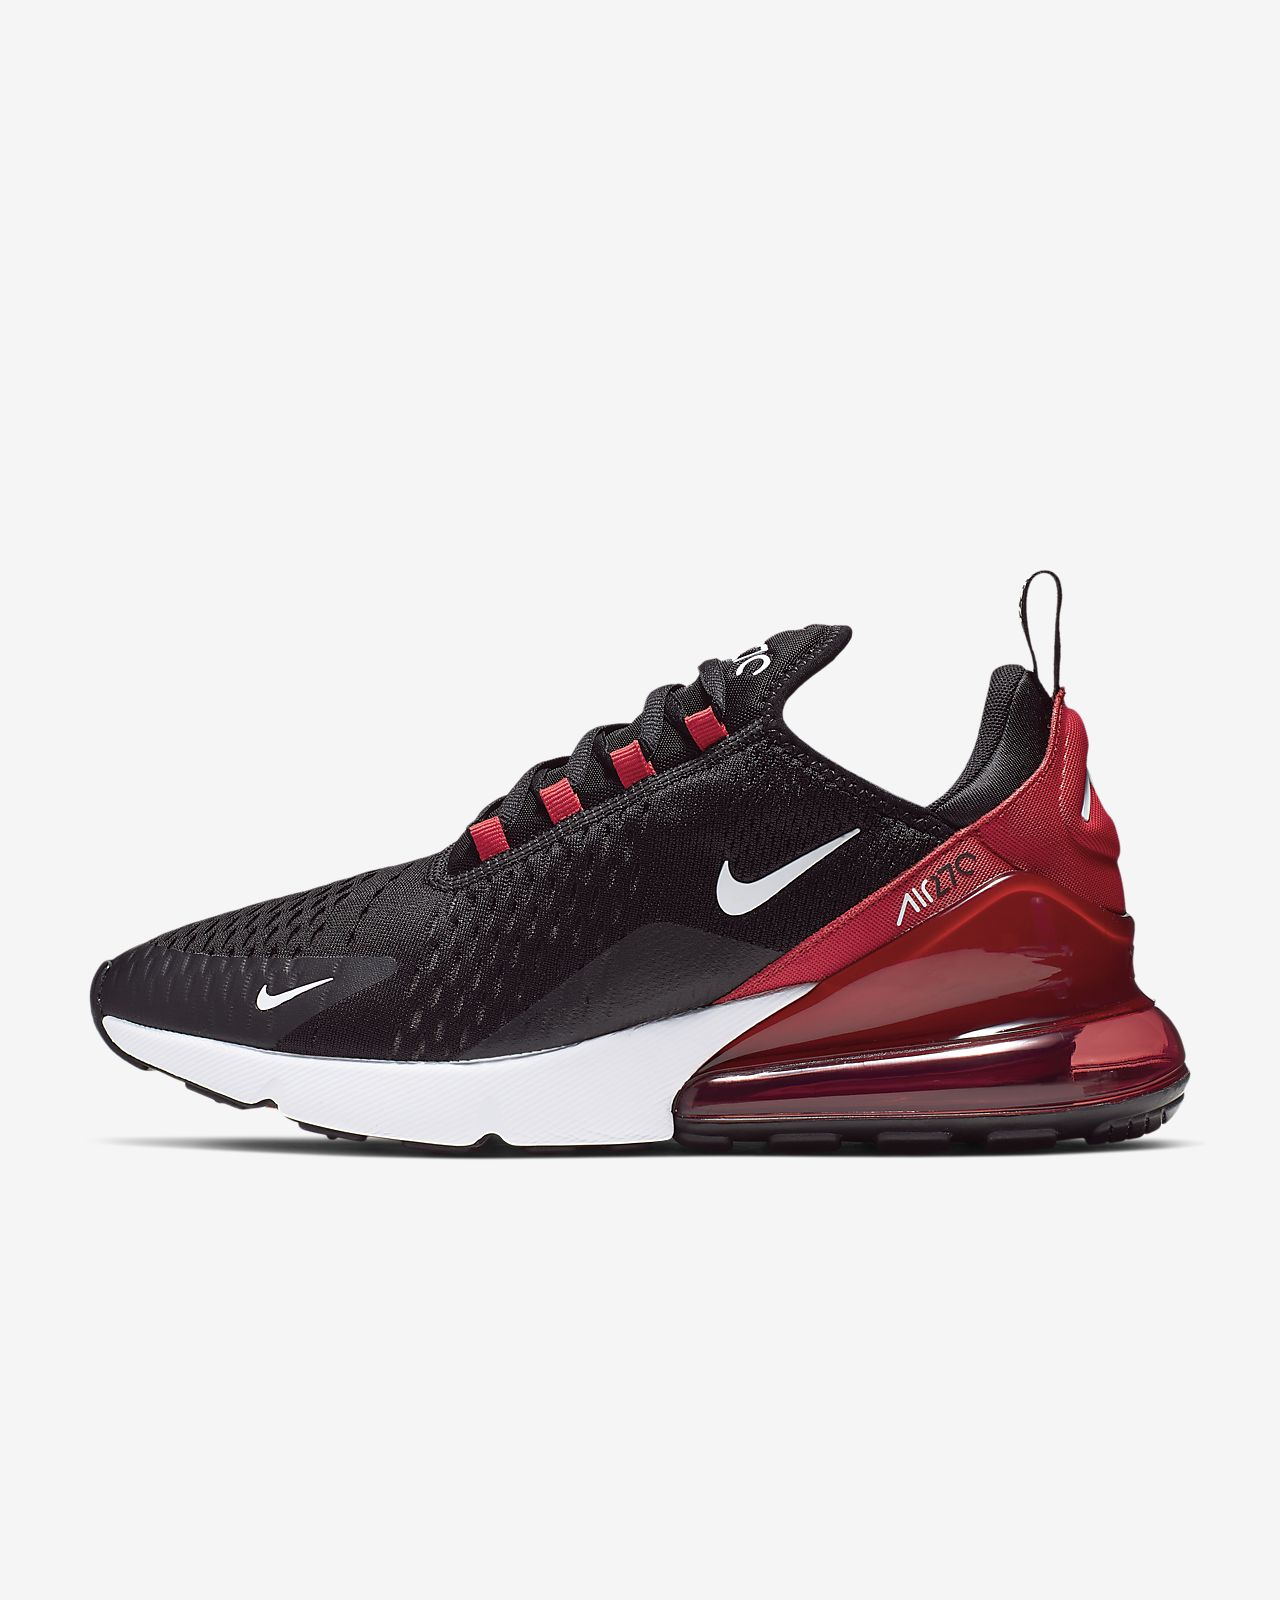 meet 294e8 1e027 Men s Shoe. Nike Air Max 270